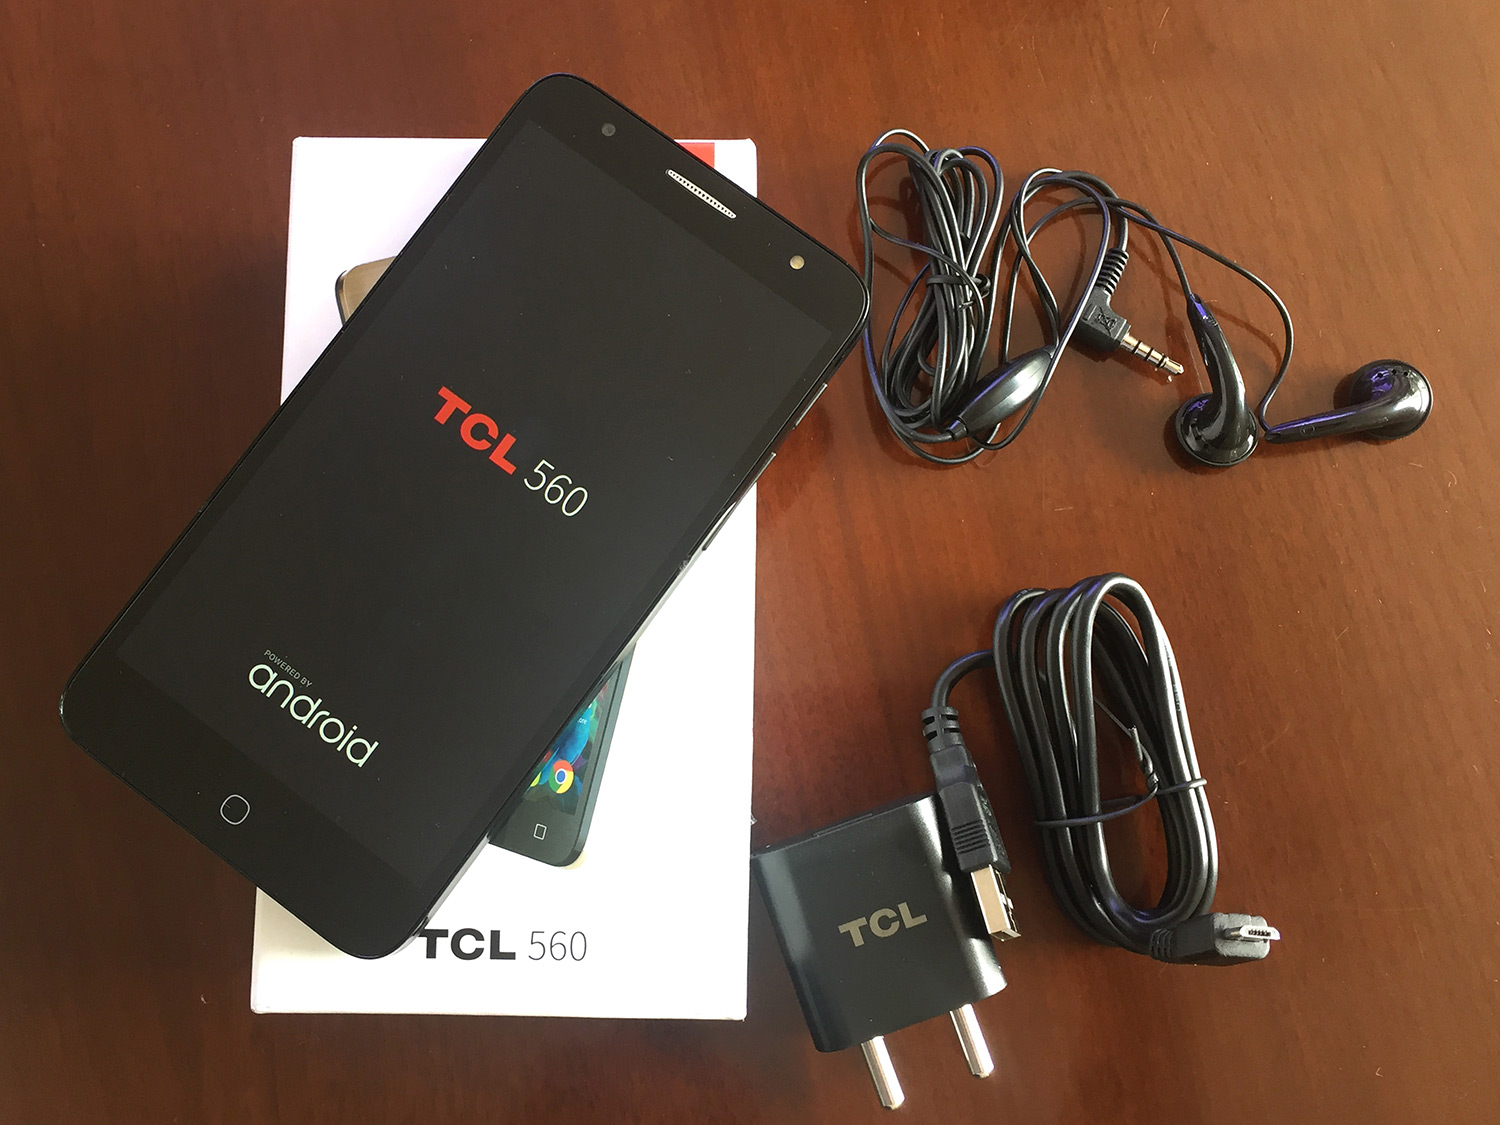 TCL 560 Mobile launch 4